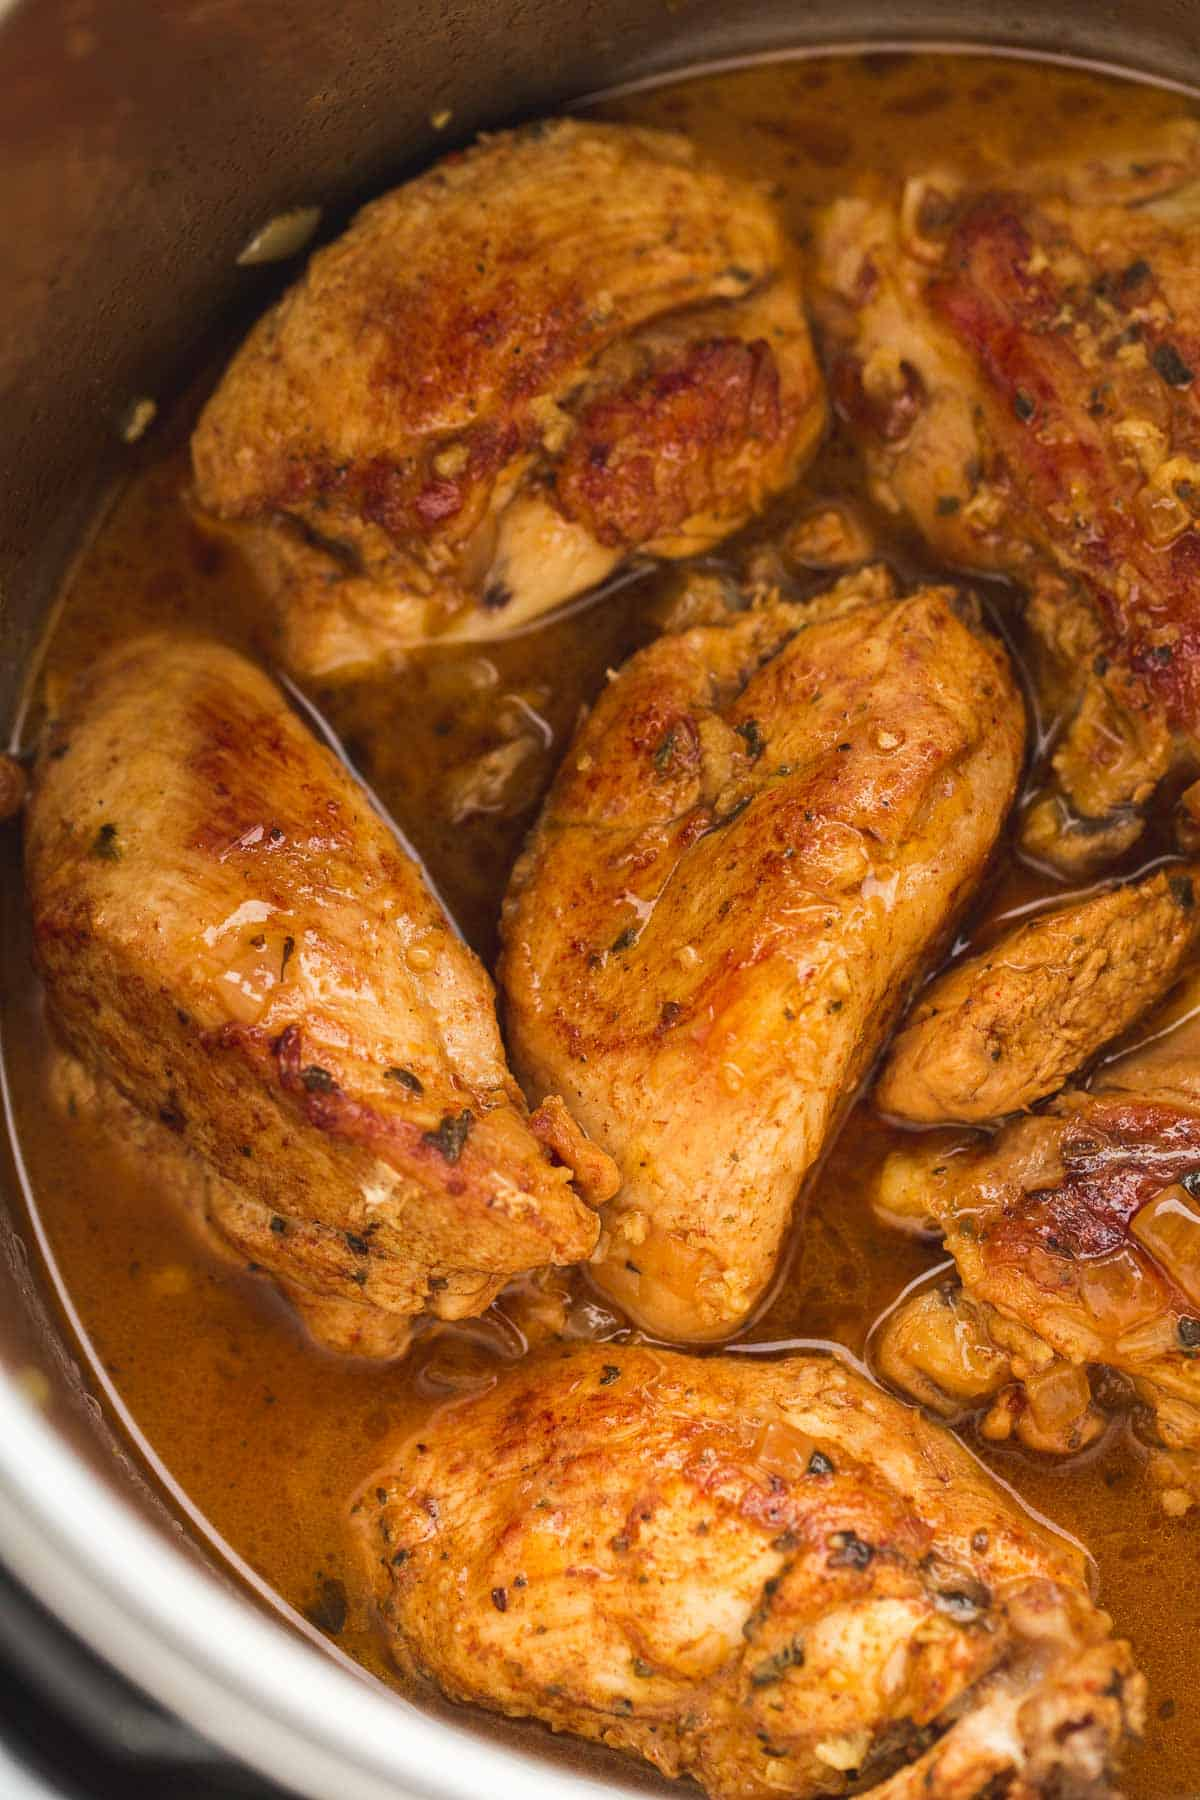 Chicken breasts put in instant pot